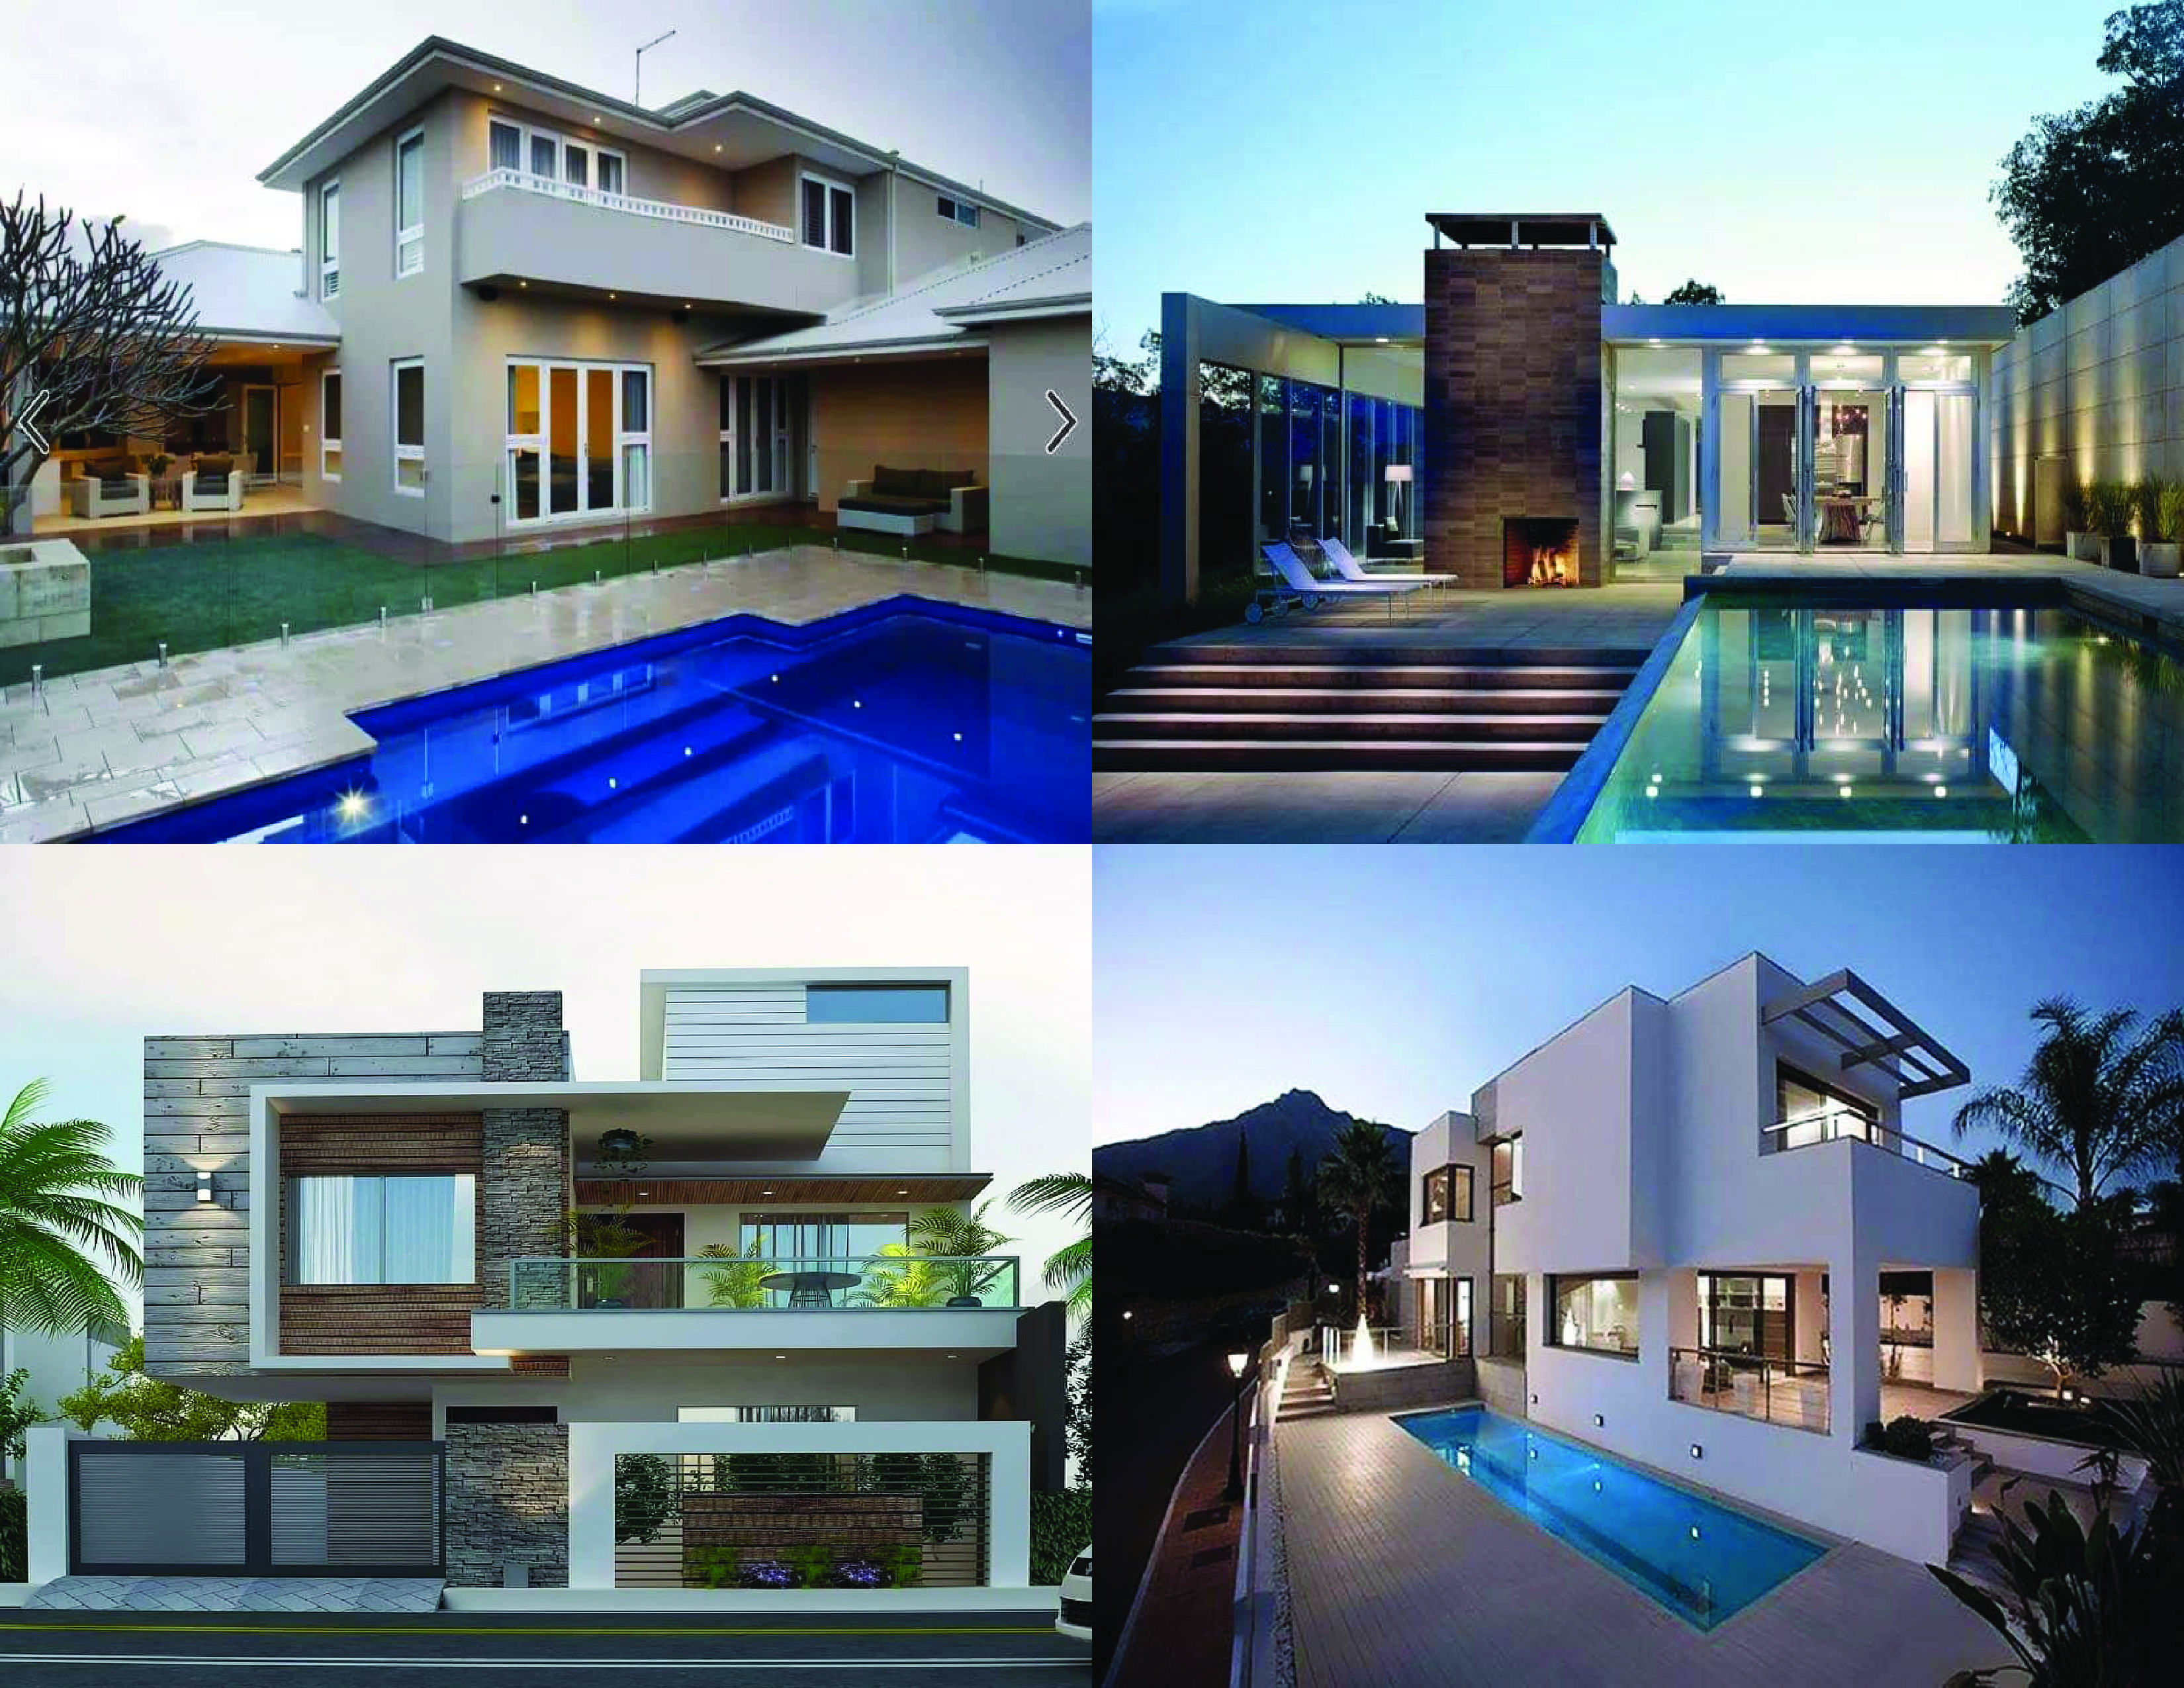 I will make Interior,  Exterior and Landscape rendering for you